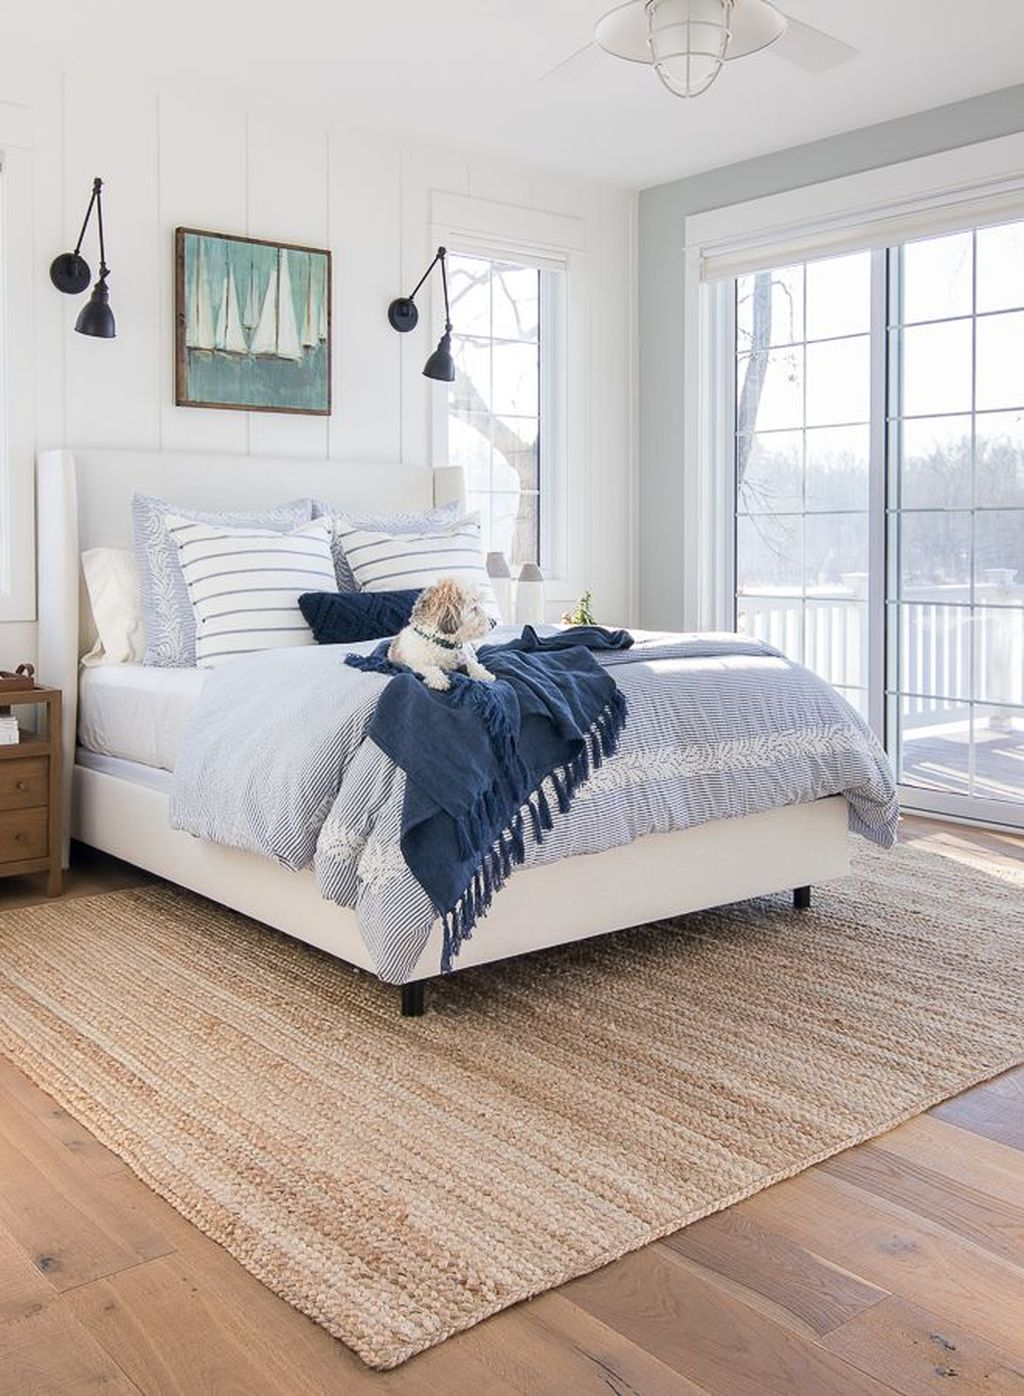 Lovely Lake Bedroom Decorating Ideas 25